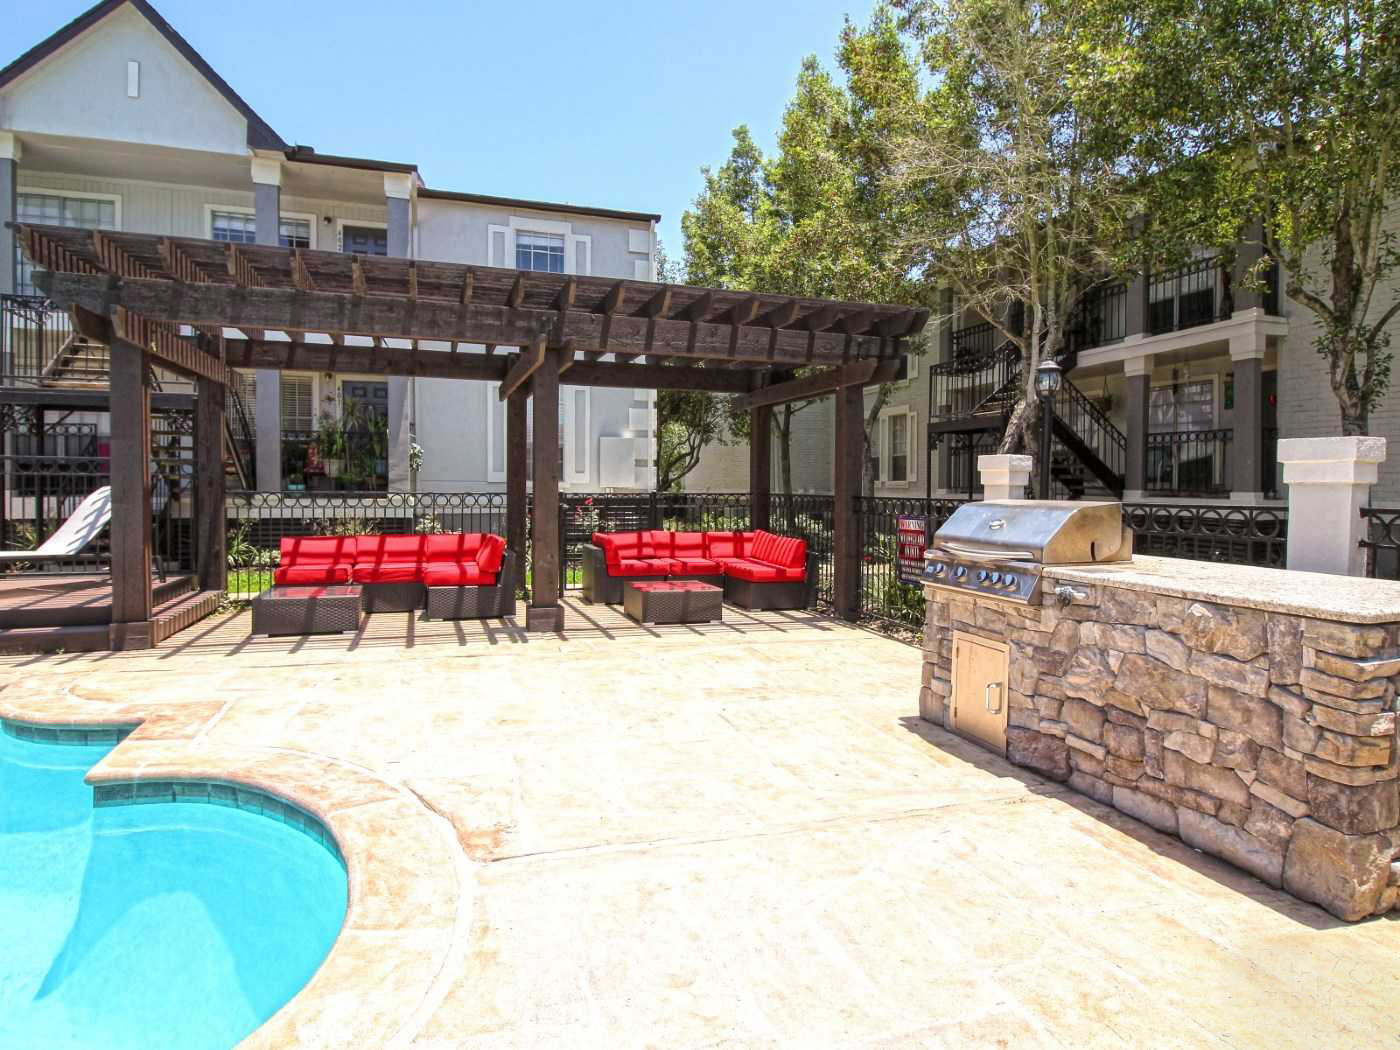 Outdoor Grill at La Maison at Lake Cove Apartments in Seabrook, Texas